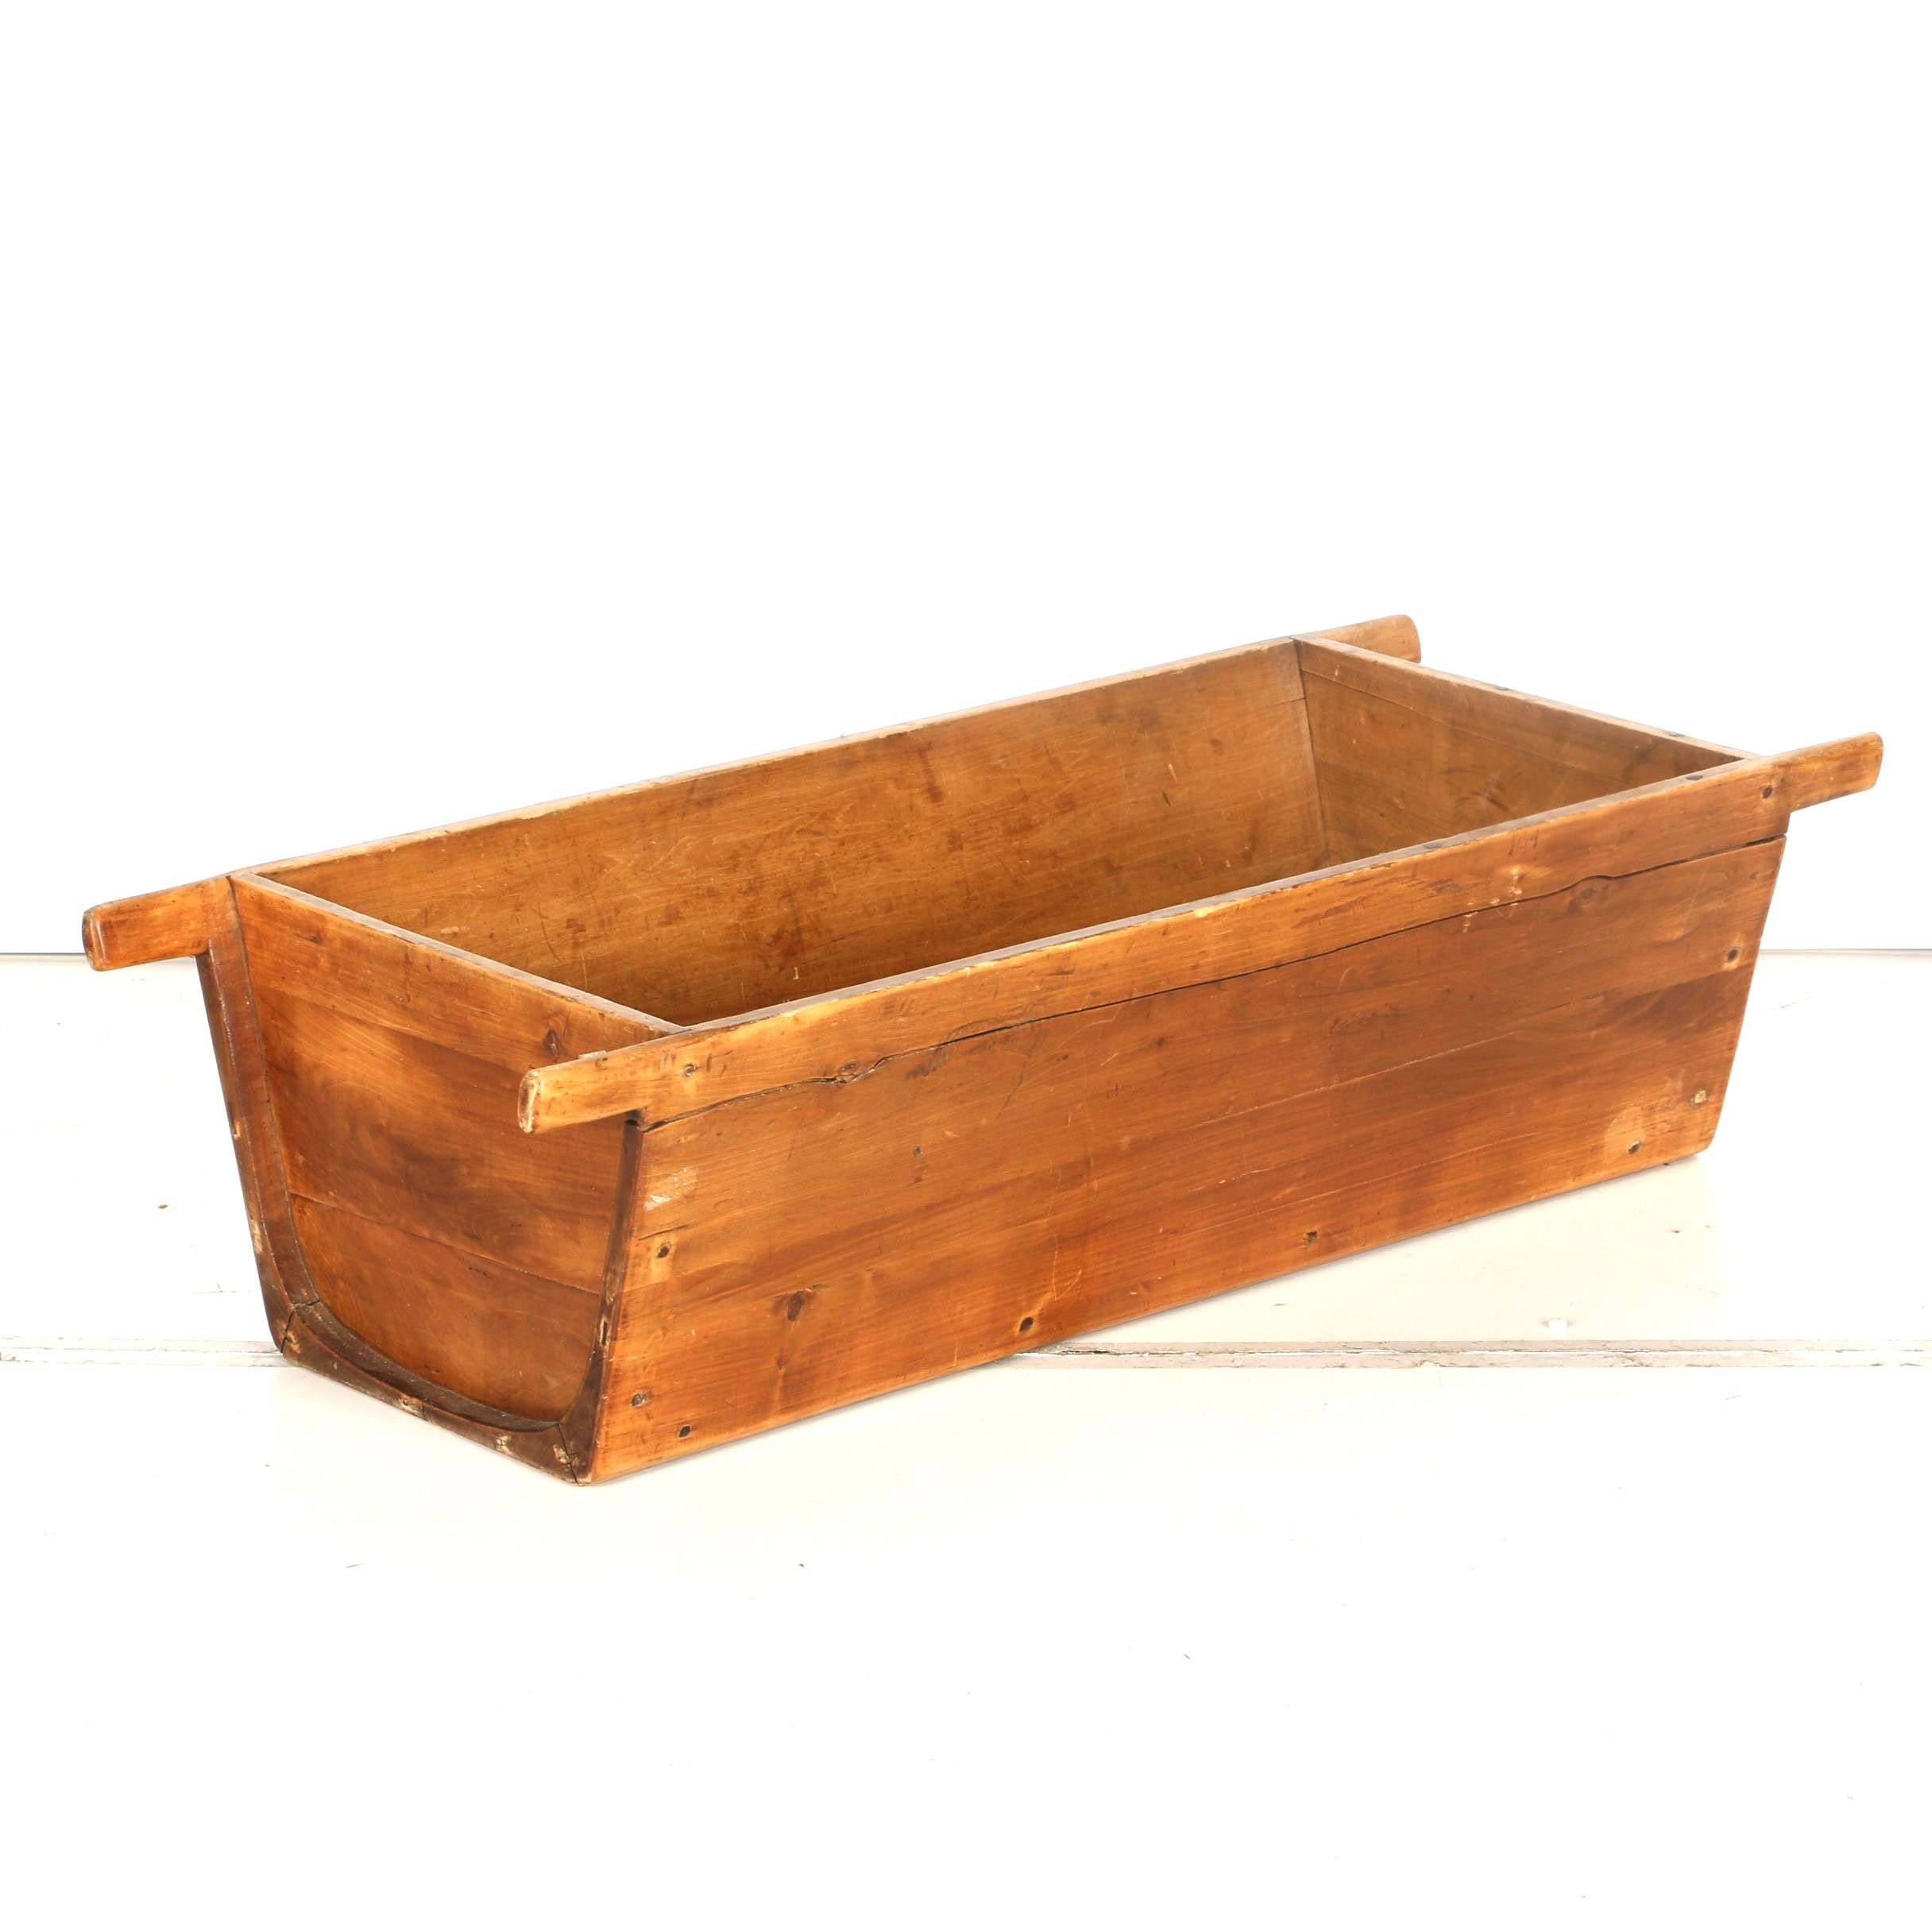 Vintage Wooden Trough